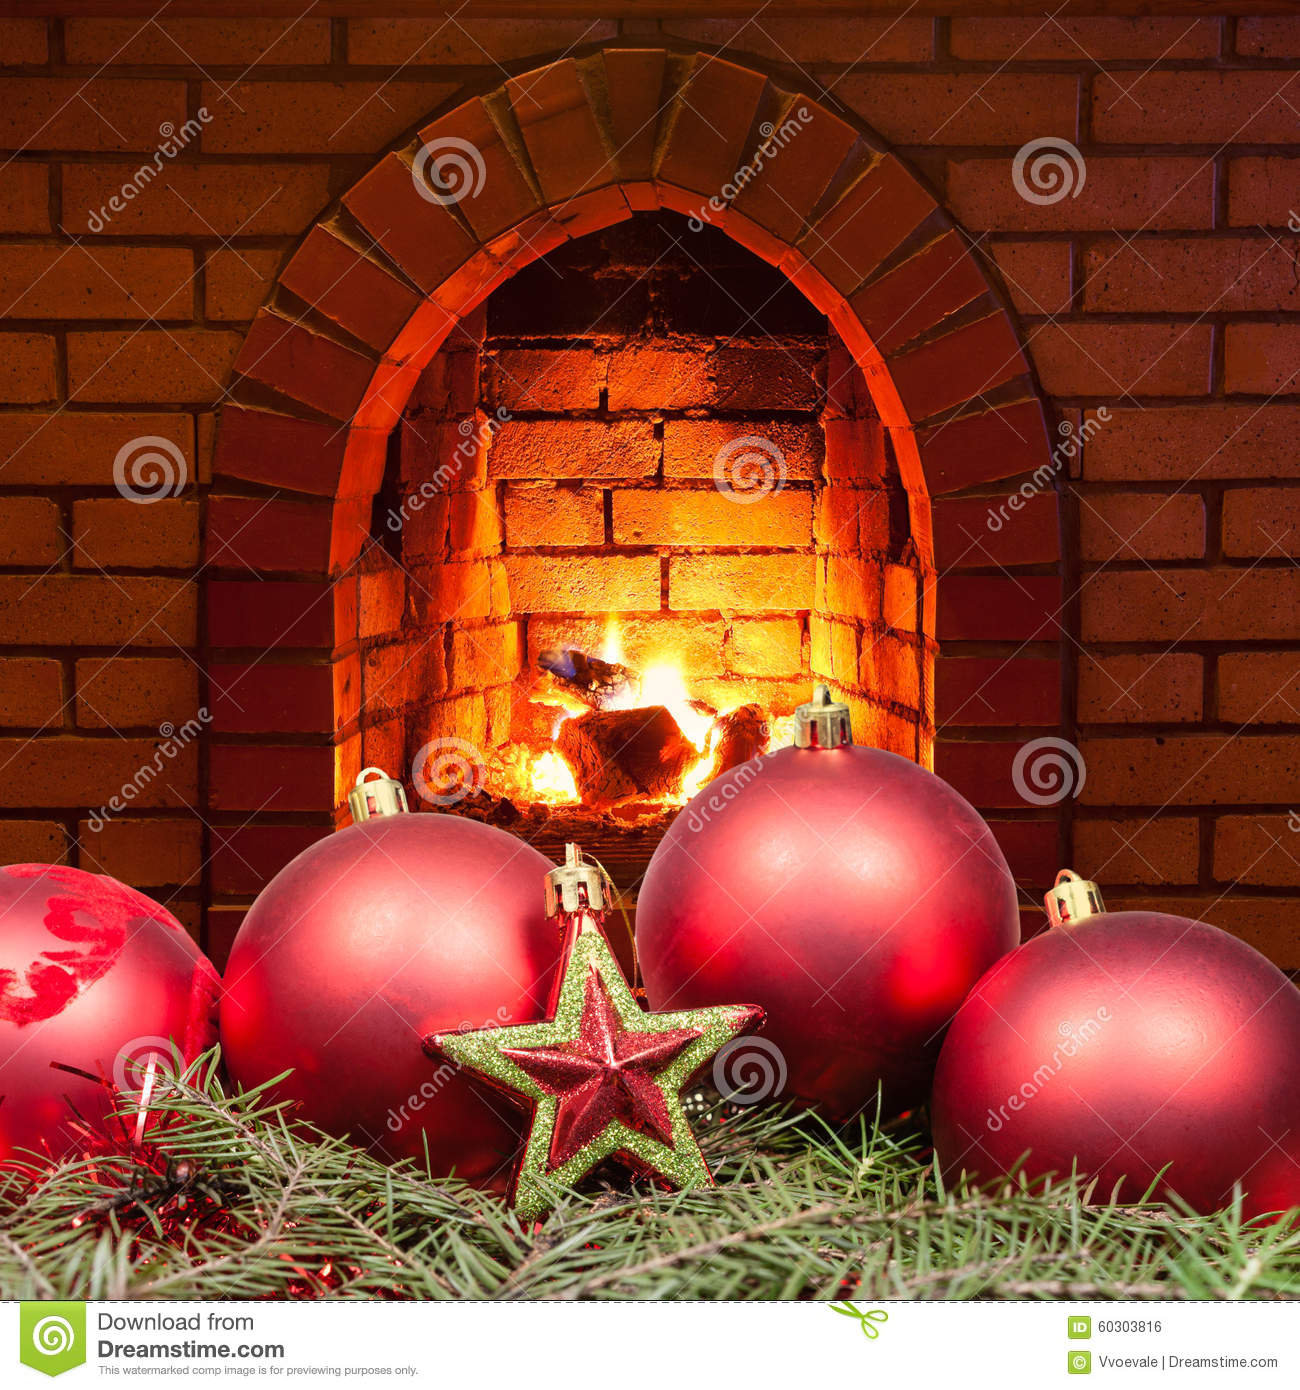 Red star and Xmas bubles and home fireplace